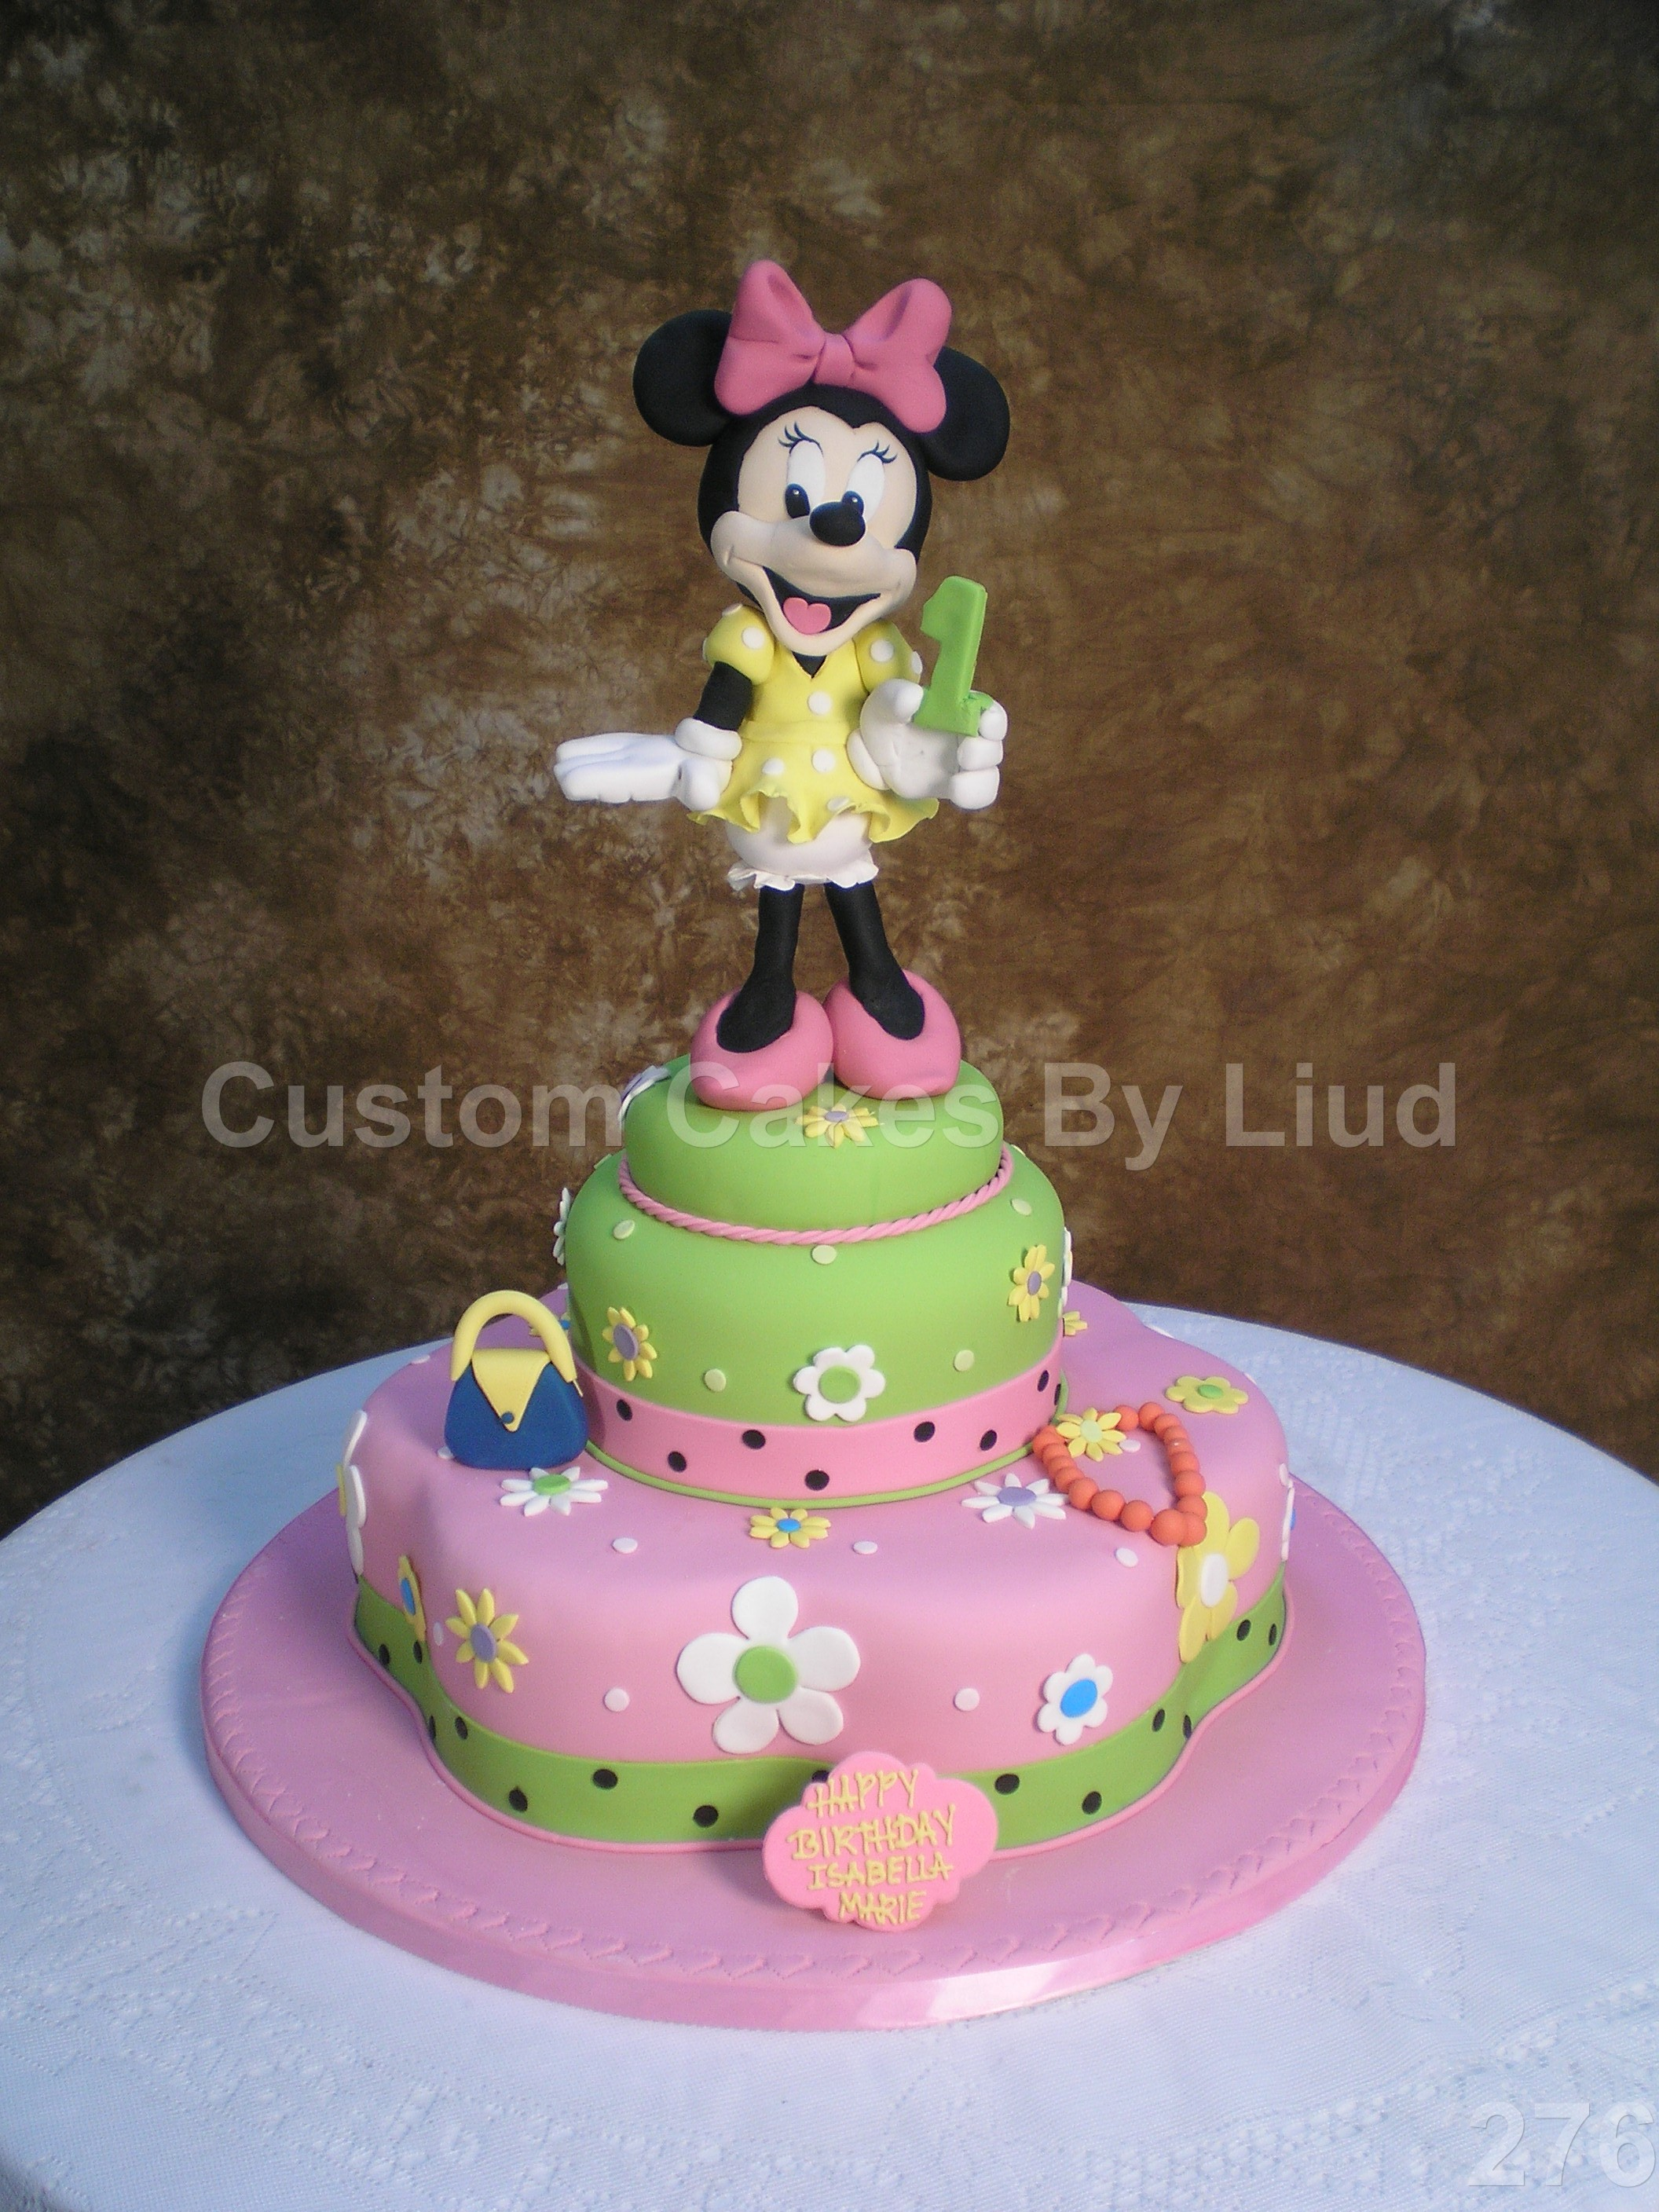 Custom Girls Birthday Cake